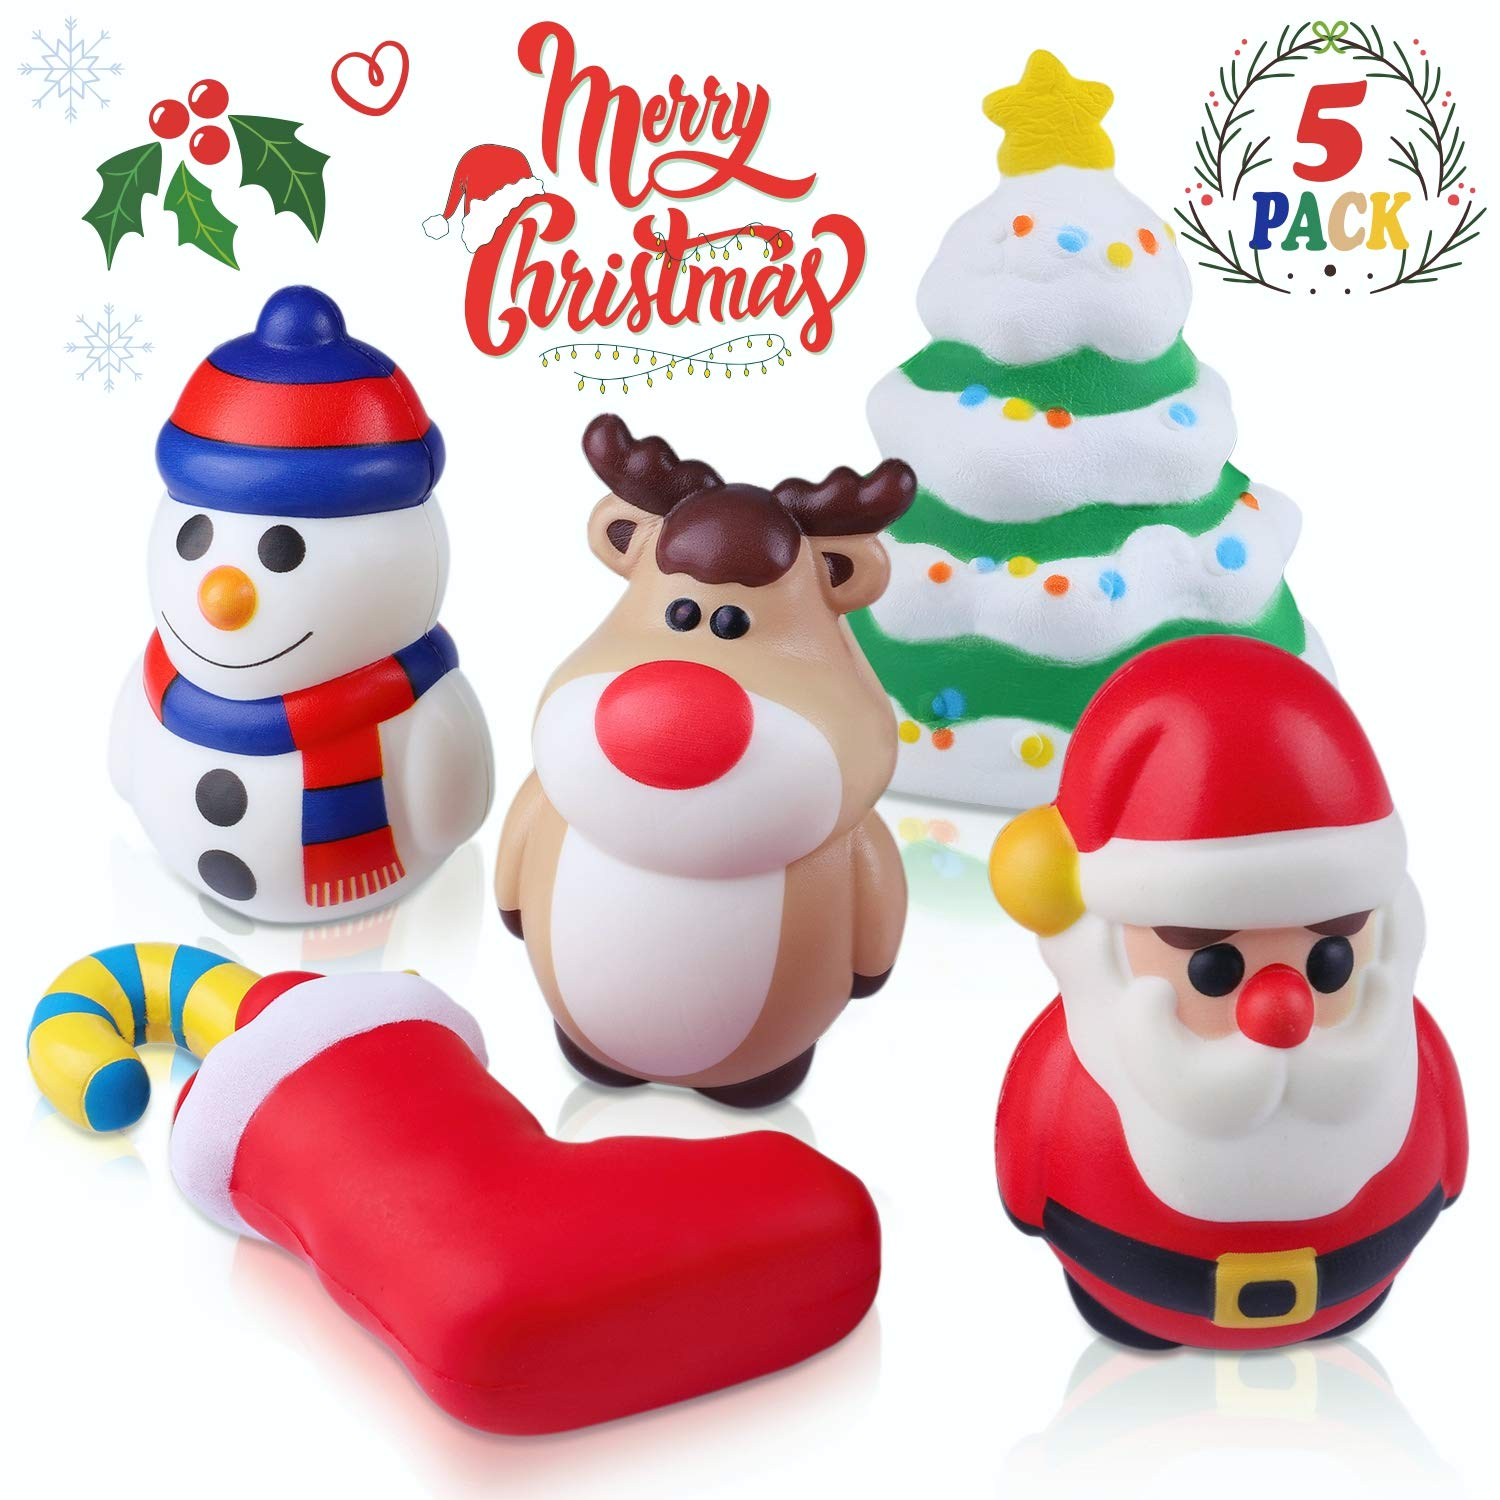 fc05bdea9a163 Amazon.com  Jeicy Christmas Squishy Toys Includes Santa